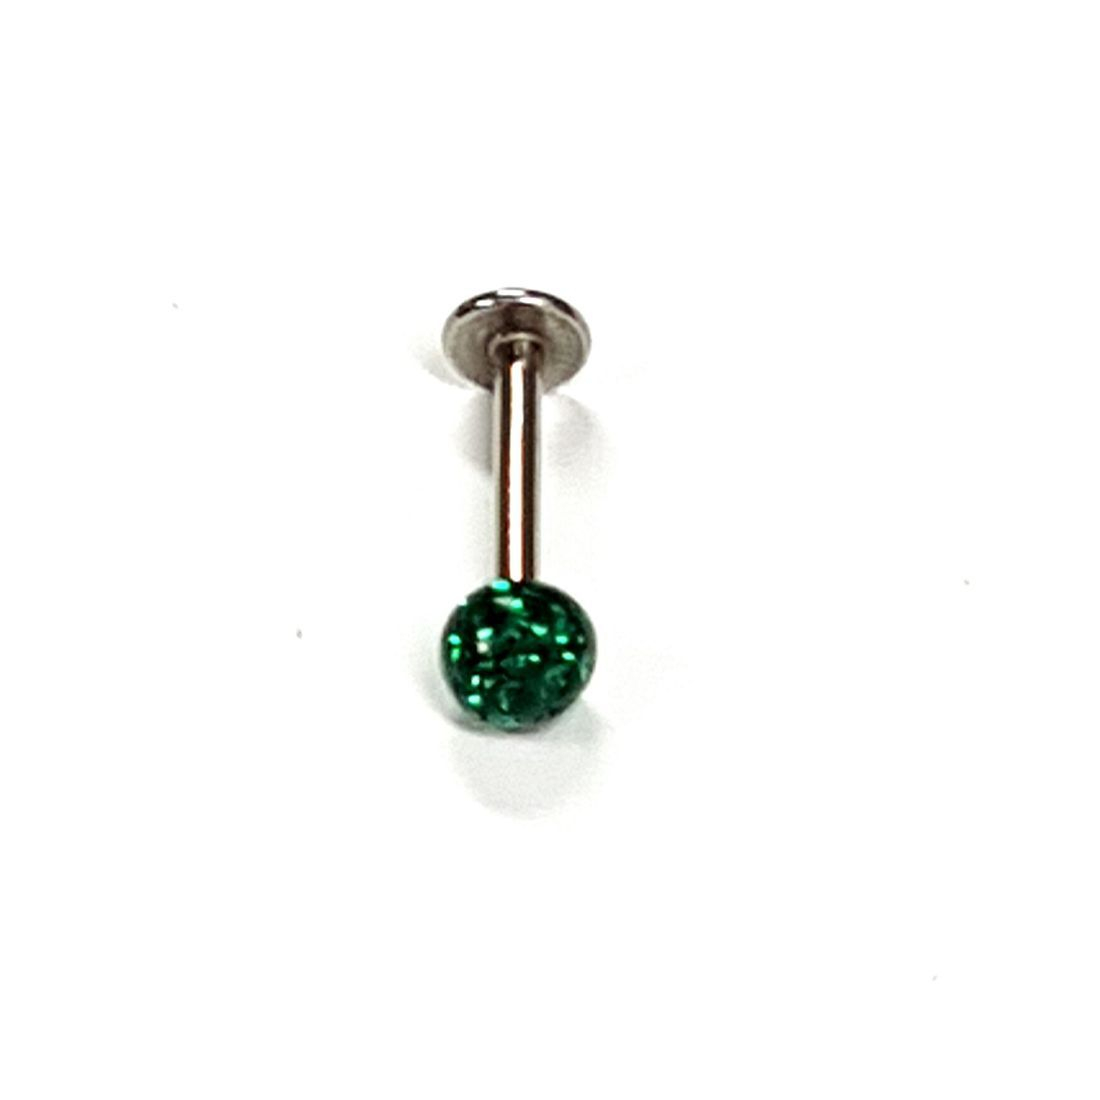 1.2mm x 8mm Turquoise Crystal Flatback Bar    available at Kazbah online and our Leicester City Centre Shop